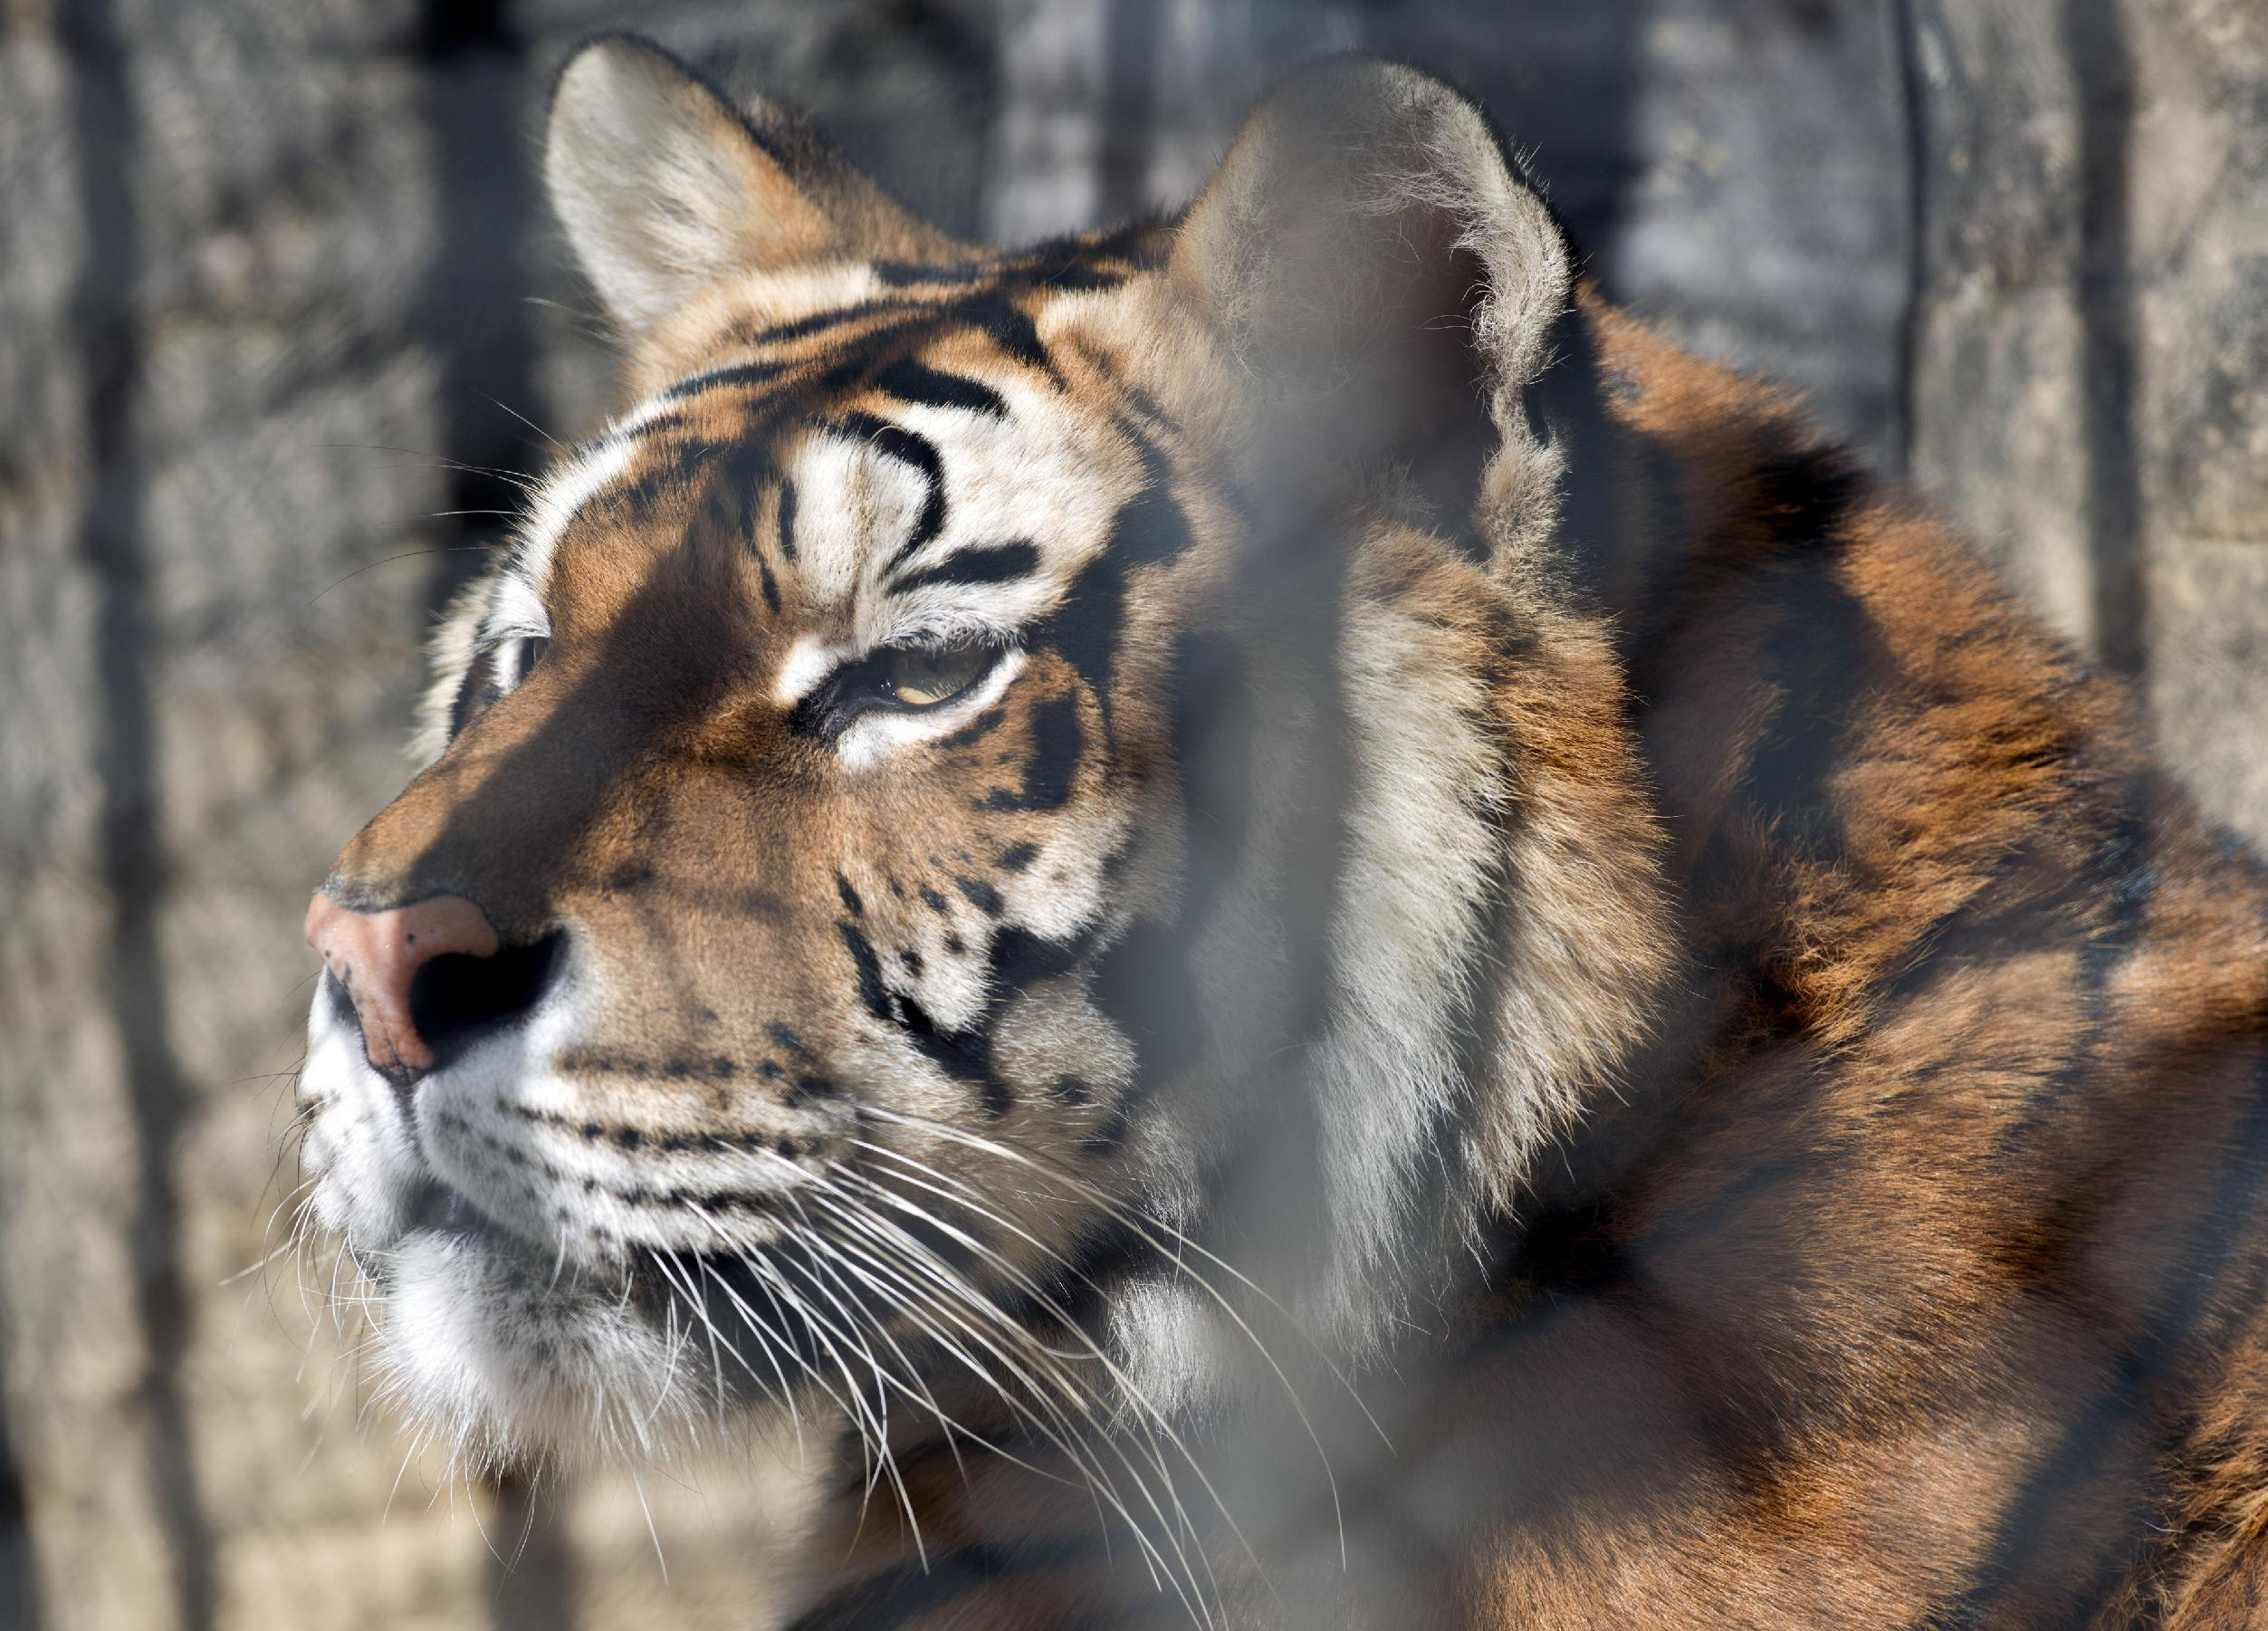 In this Aug. 24, 2013 photo, an unnamed female tiger looks out from her cage at the city zoo in Montevideo, Uruguay. Montevideo's municipal zoo is giving up its two tigers, which will be sent to a sanctuary in the United States. With their departure, the little Montevideo zoo will focus on smaller South American creatures that are easier to maintain. (AP Photo/Matilde Campodonico)